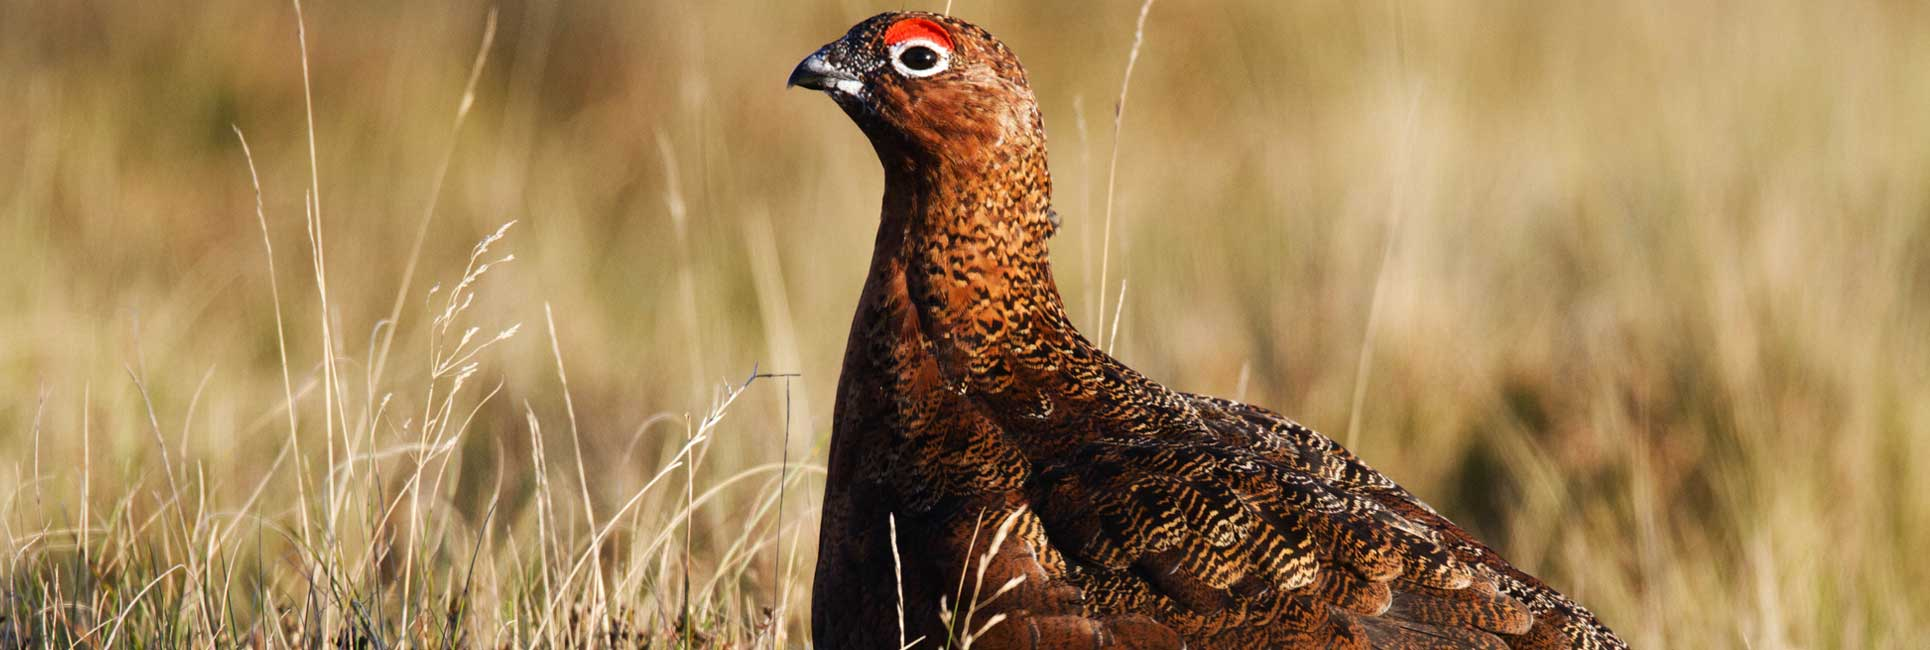 grouse standing in field